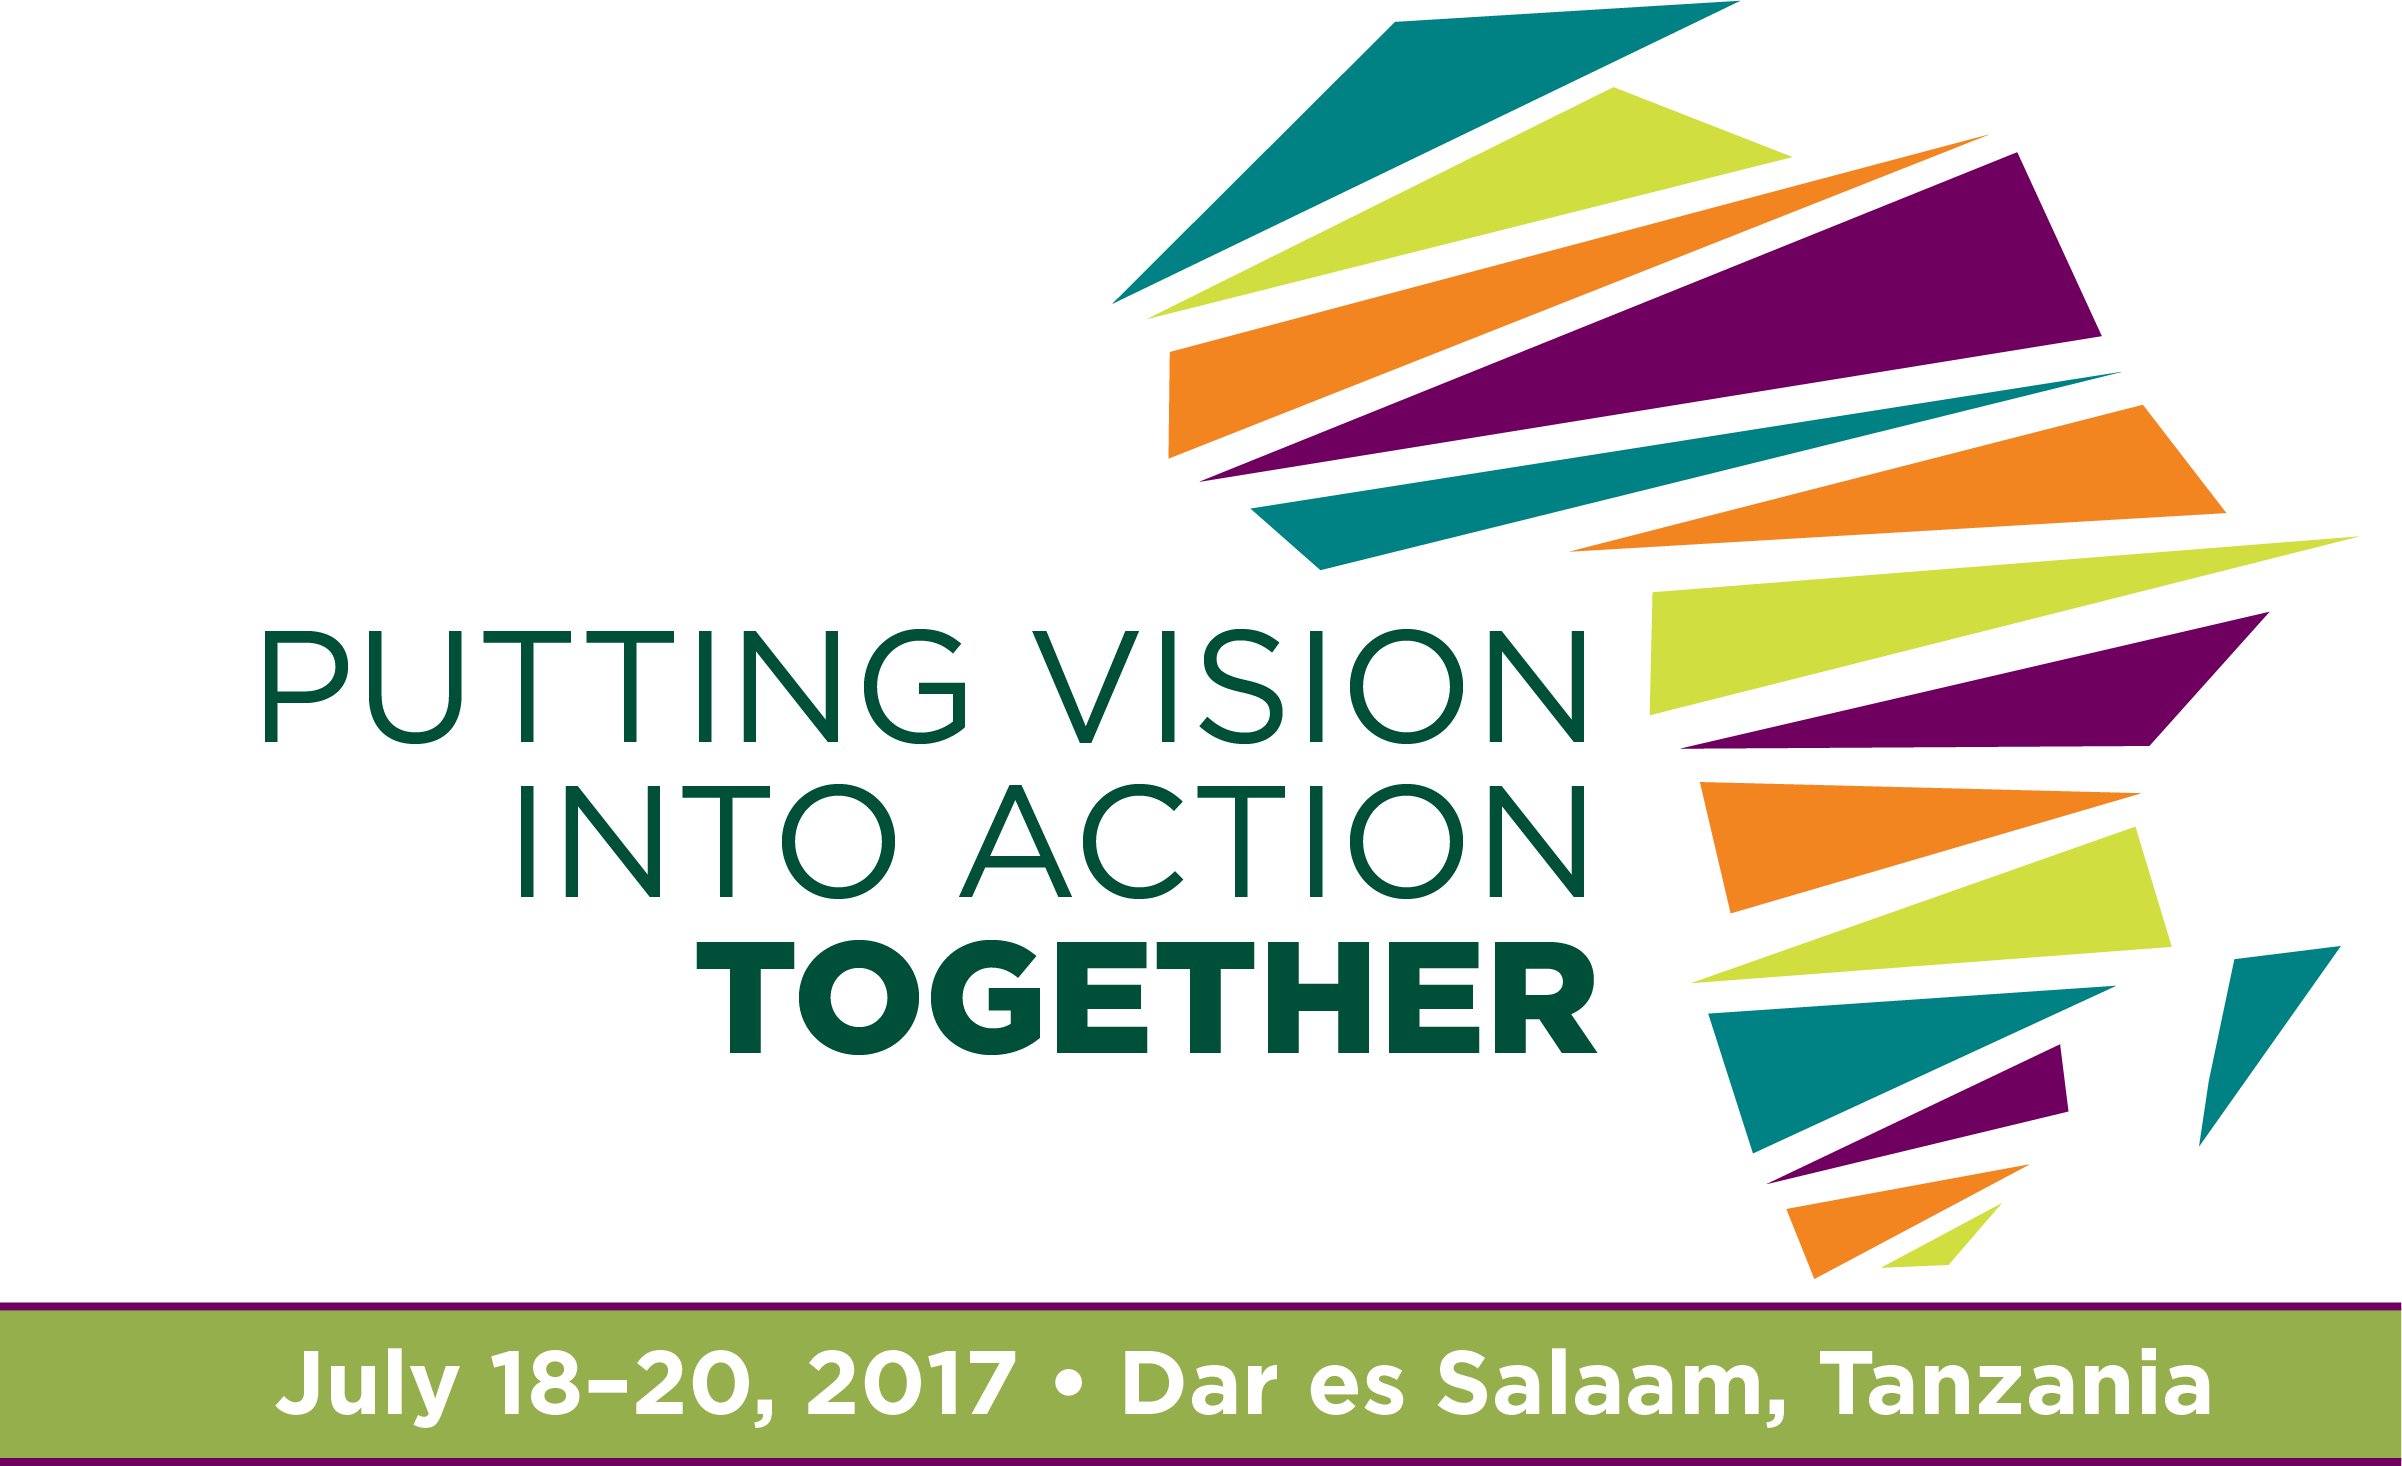 putting vision into action. together. July 18-20, 2017. Dar es Salaam, Tanzania